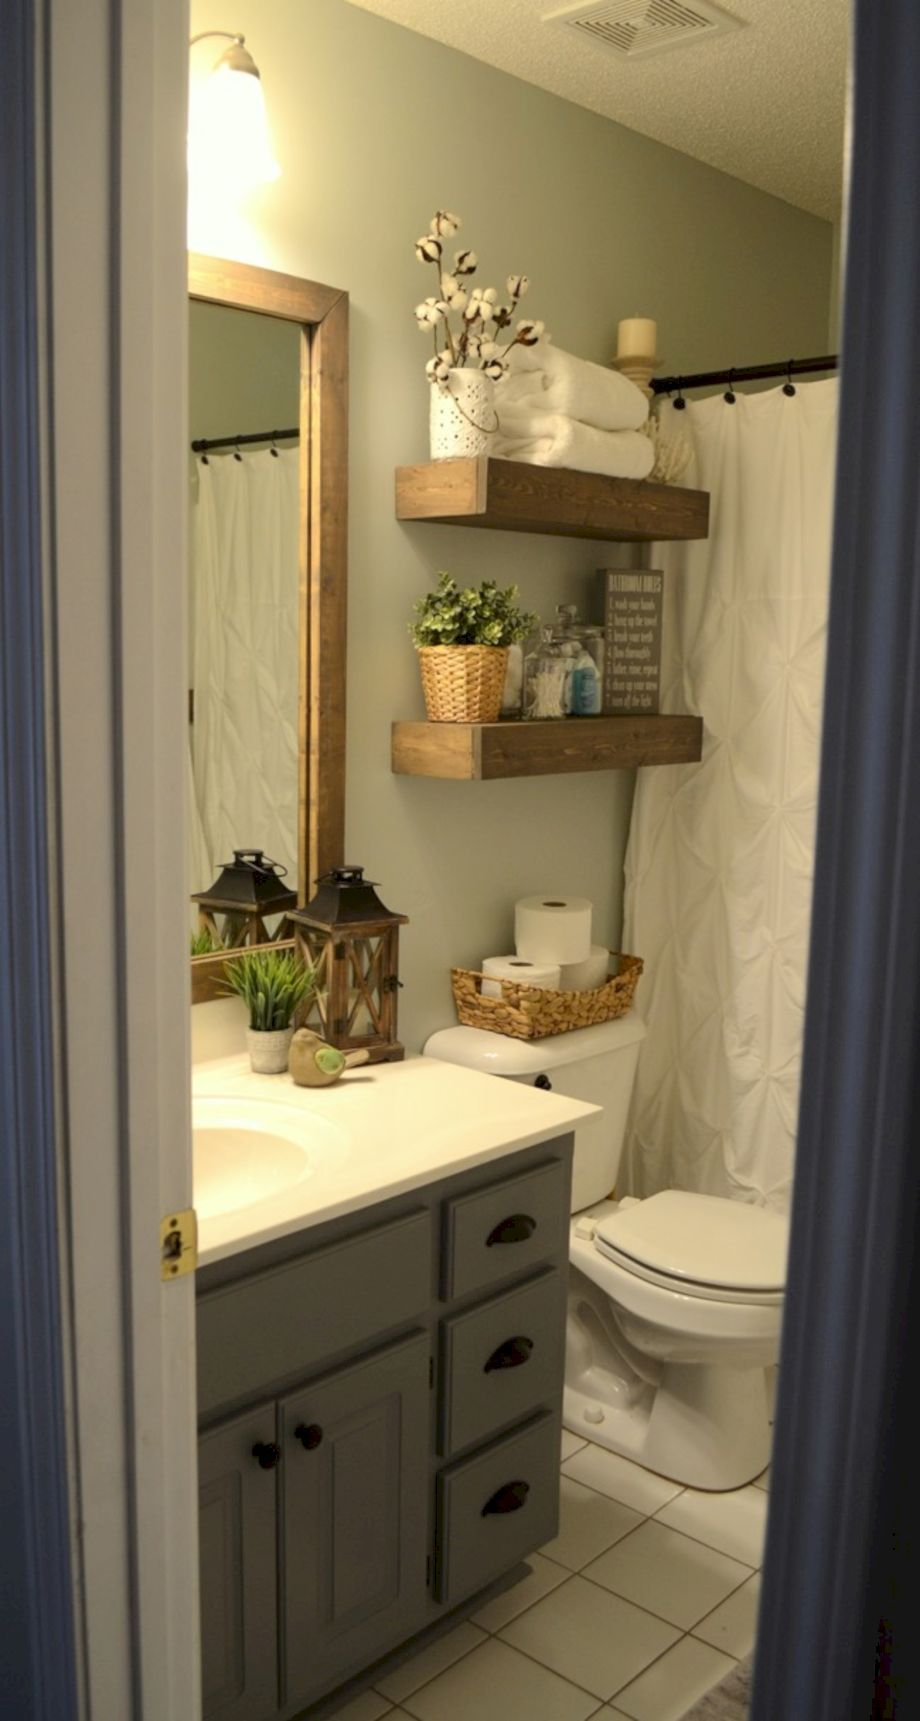 Design Megillah Bathroom Redesign For Under 200: 76 Outstanding Farmhouse Bathroom Vanity Design Ideas